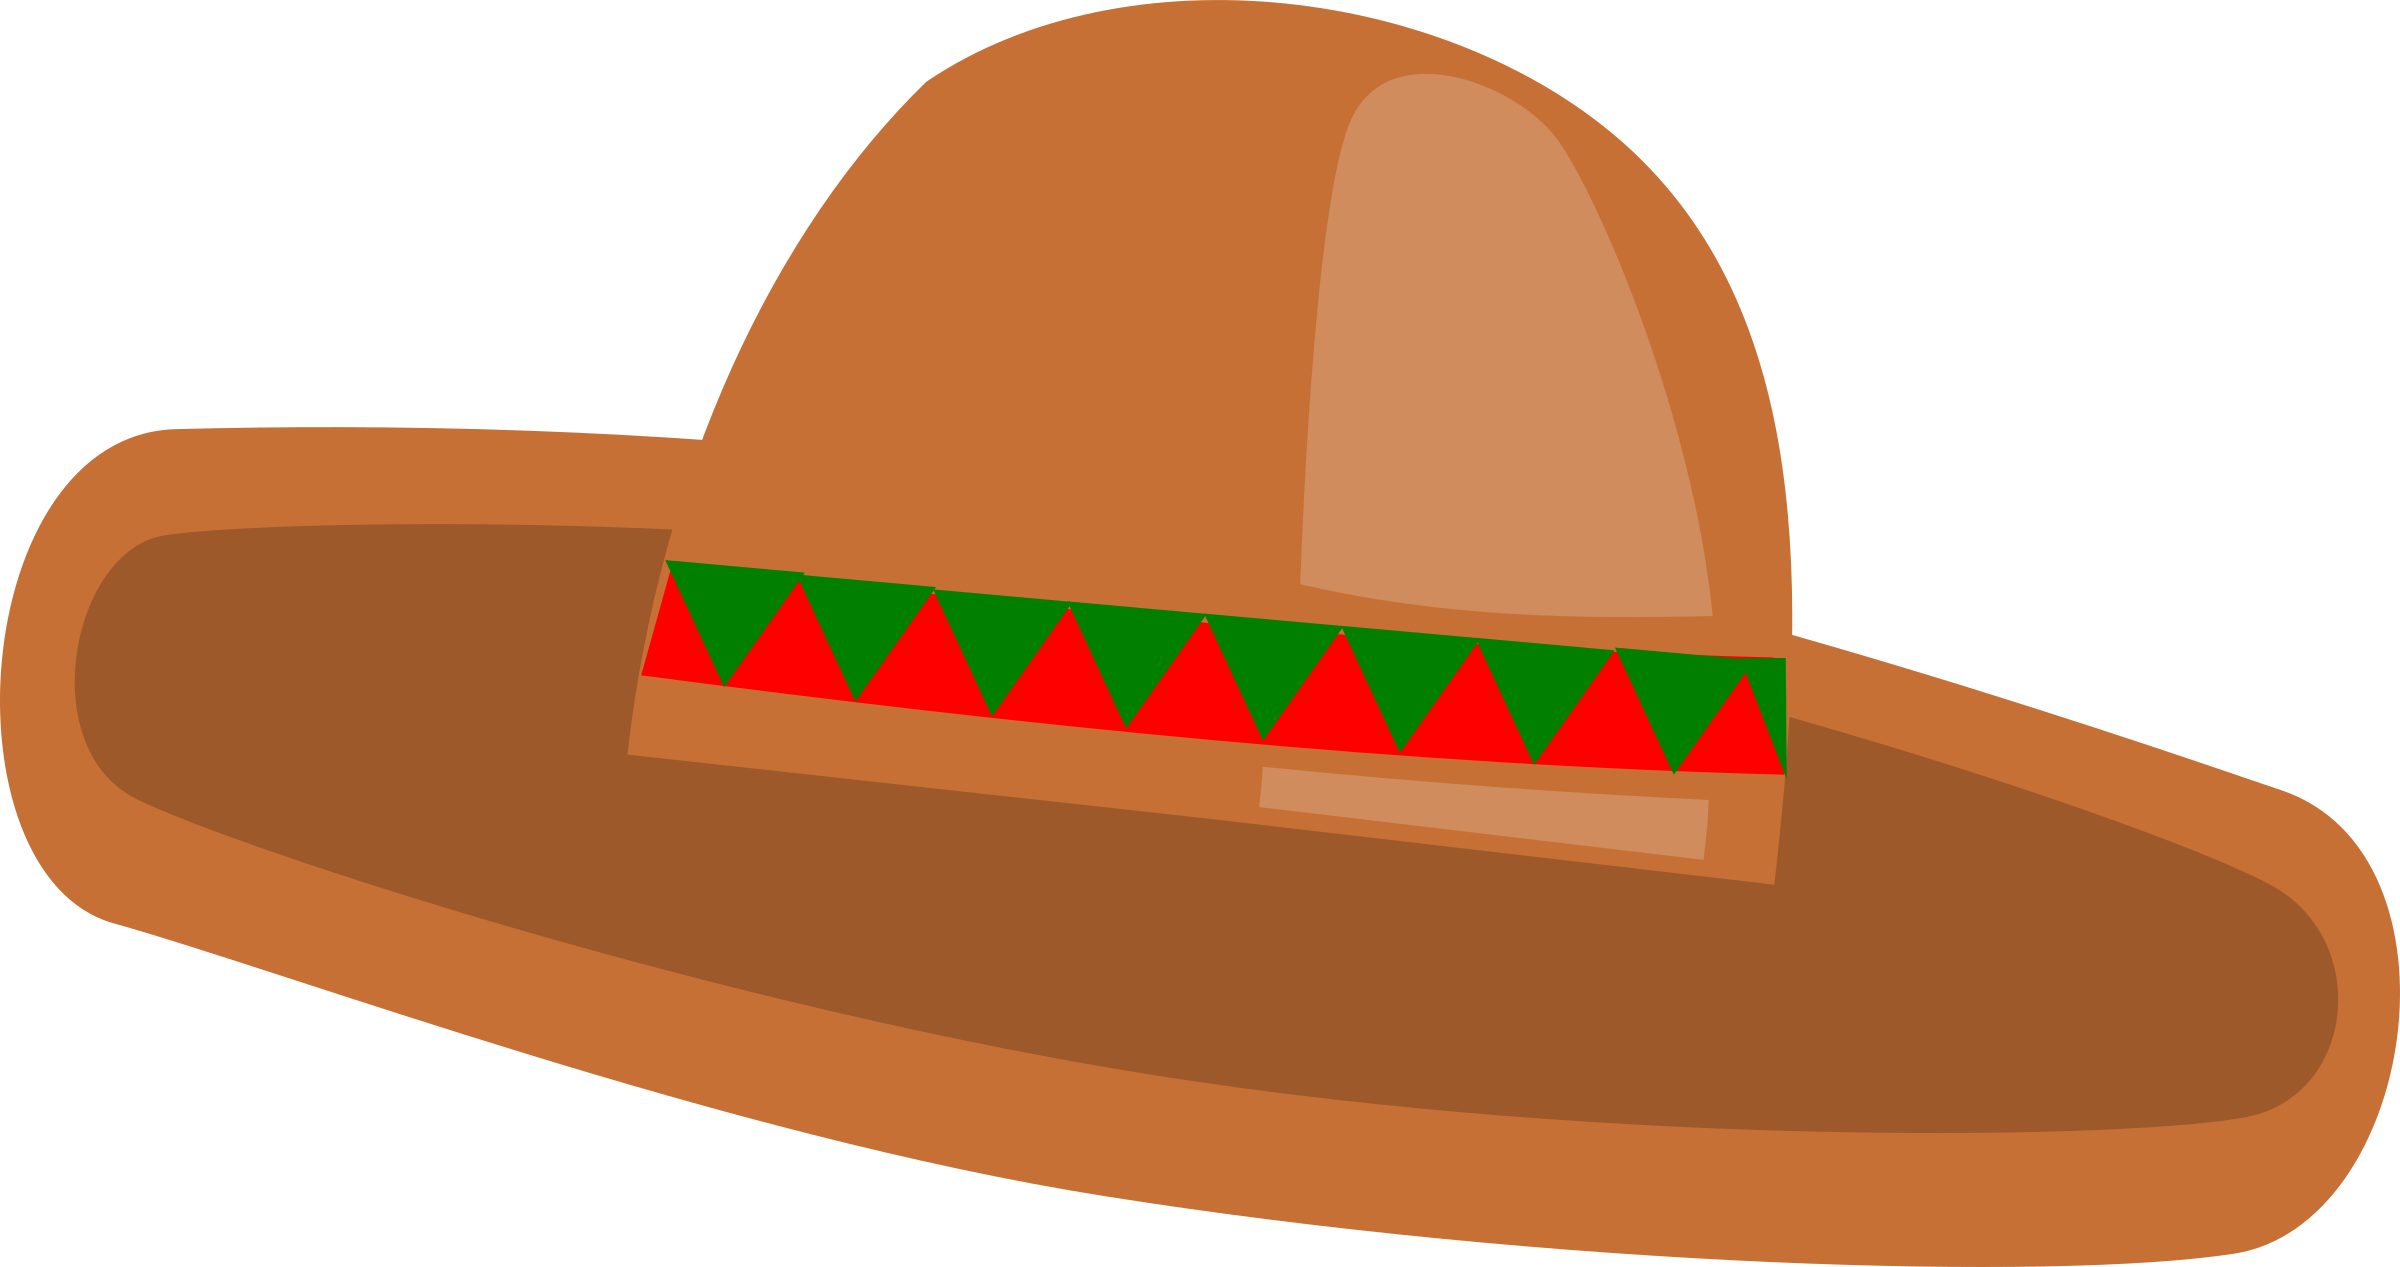 Sombrero clipart png. Mexican icons free and